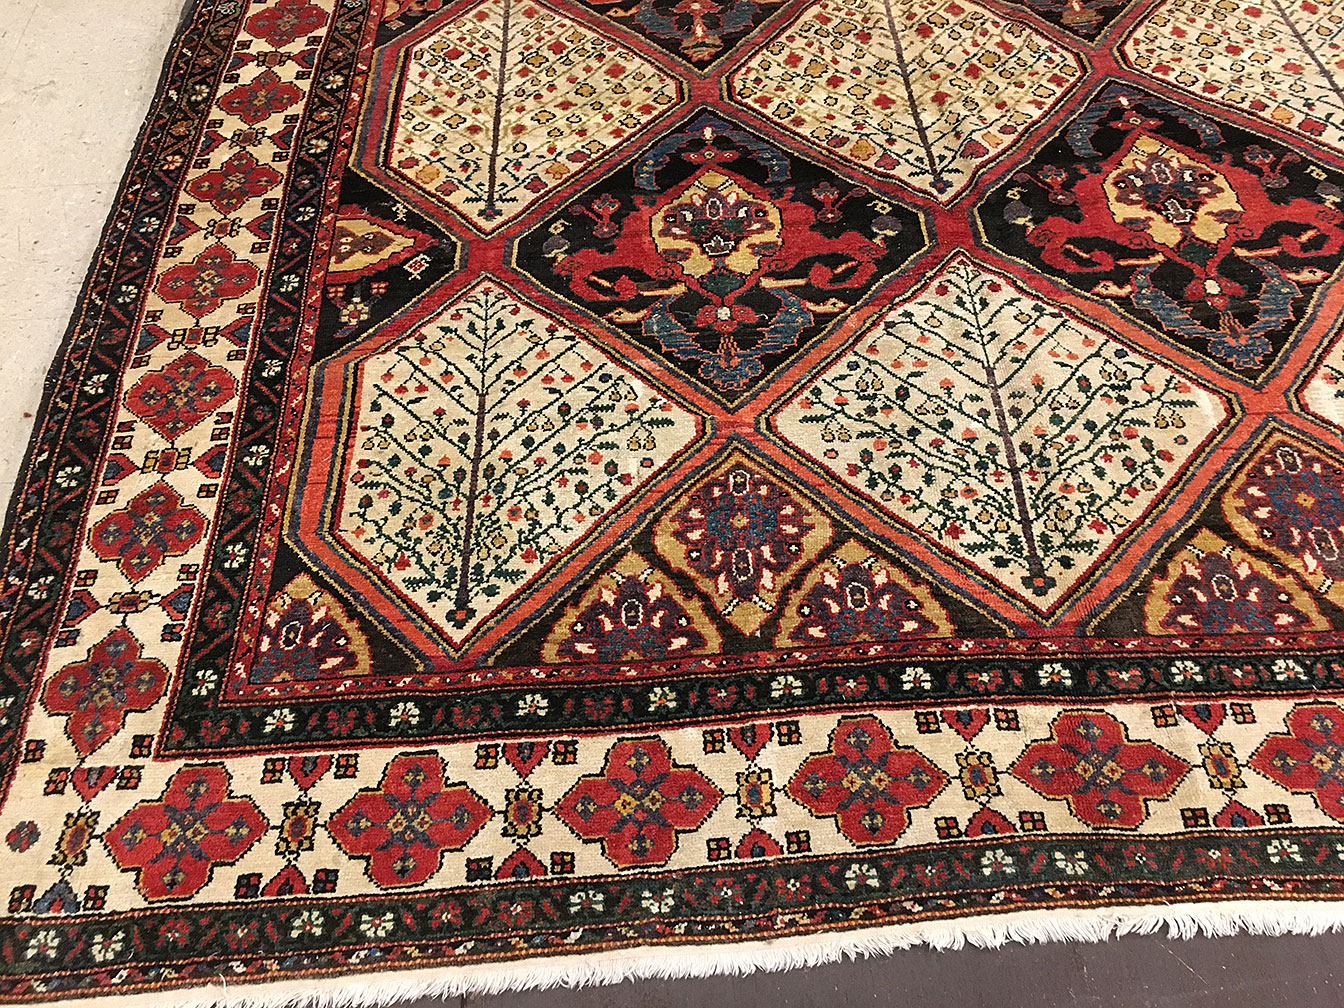 Antique baktiari Carpet - # 51990